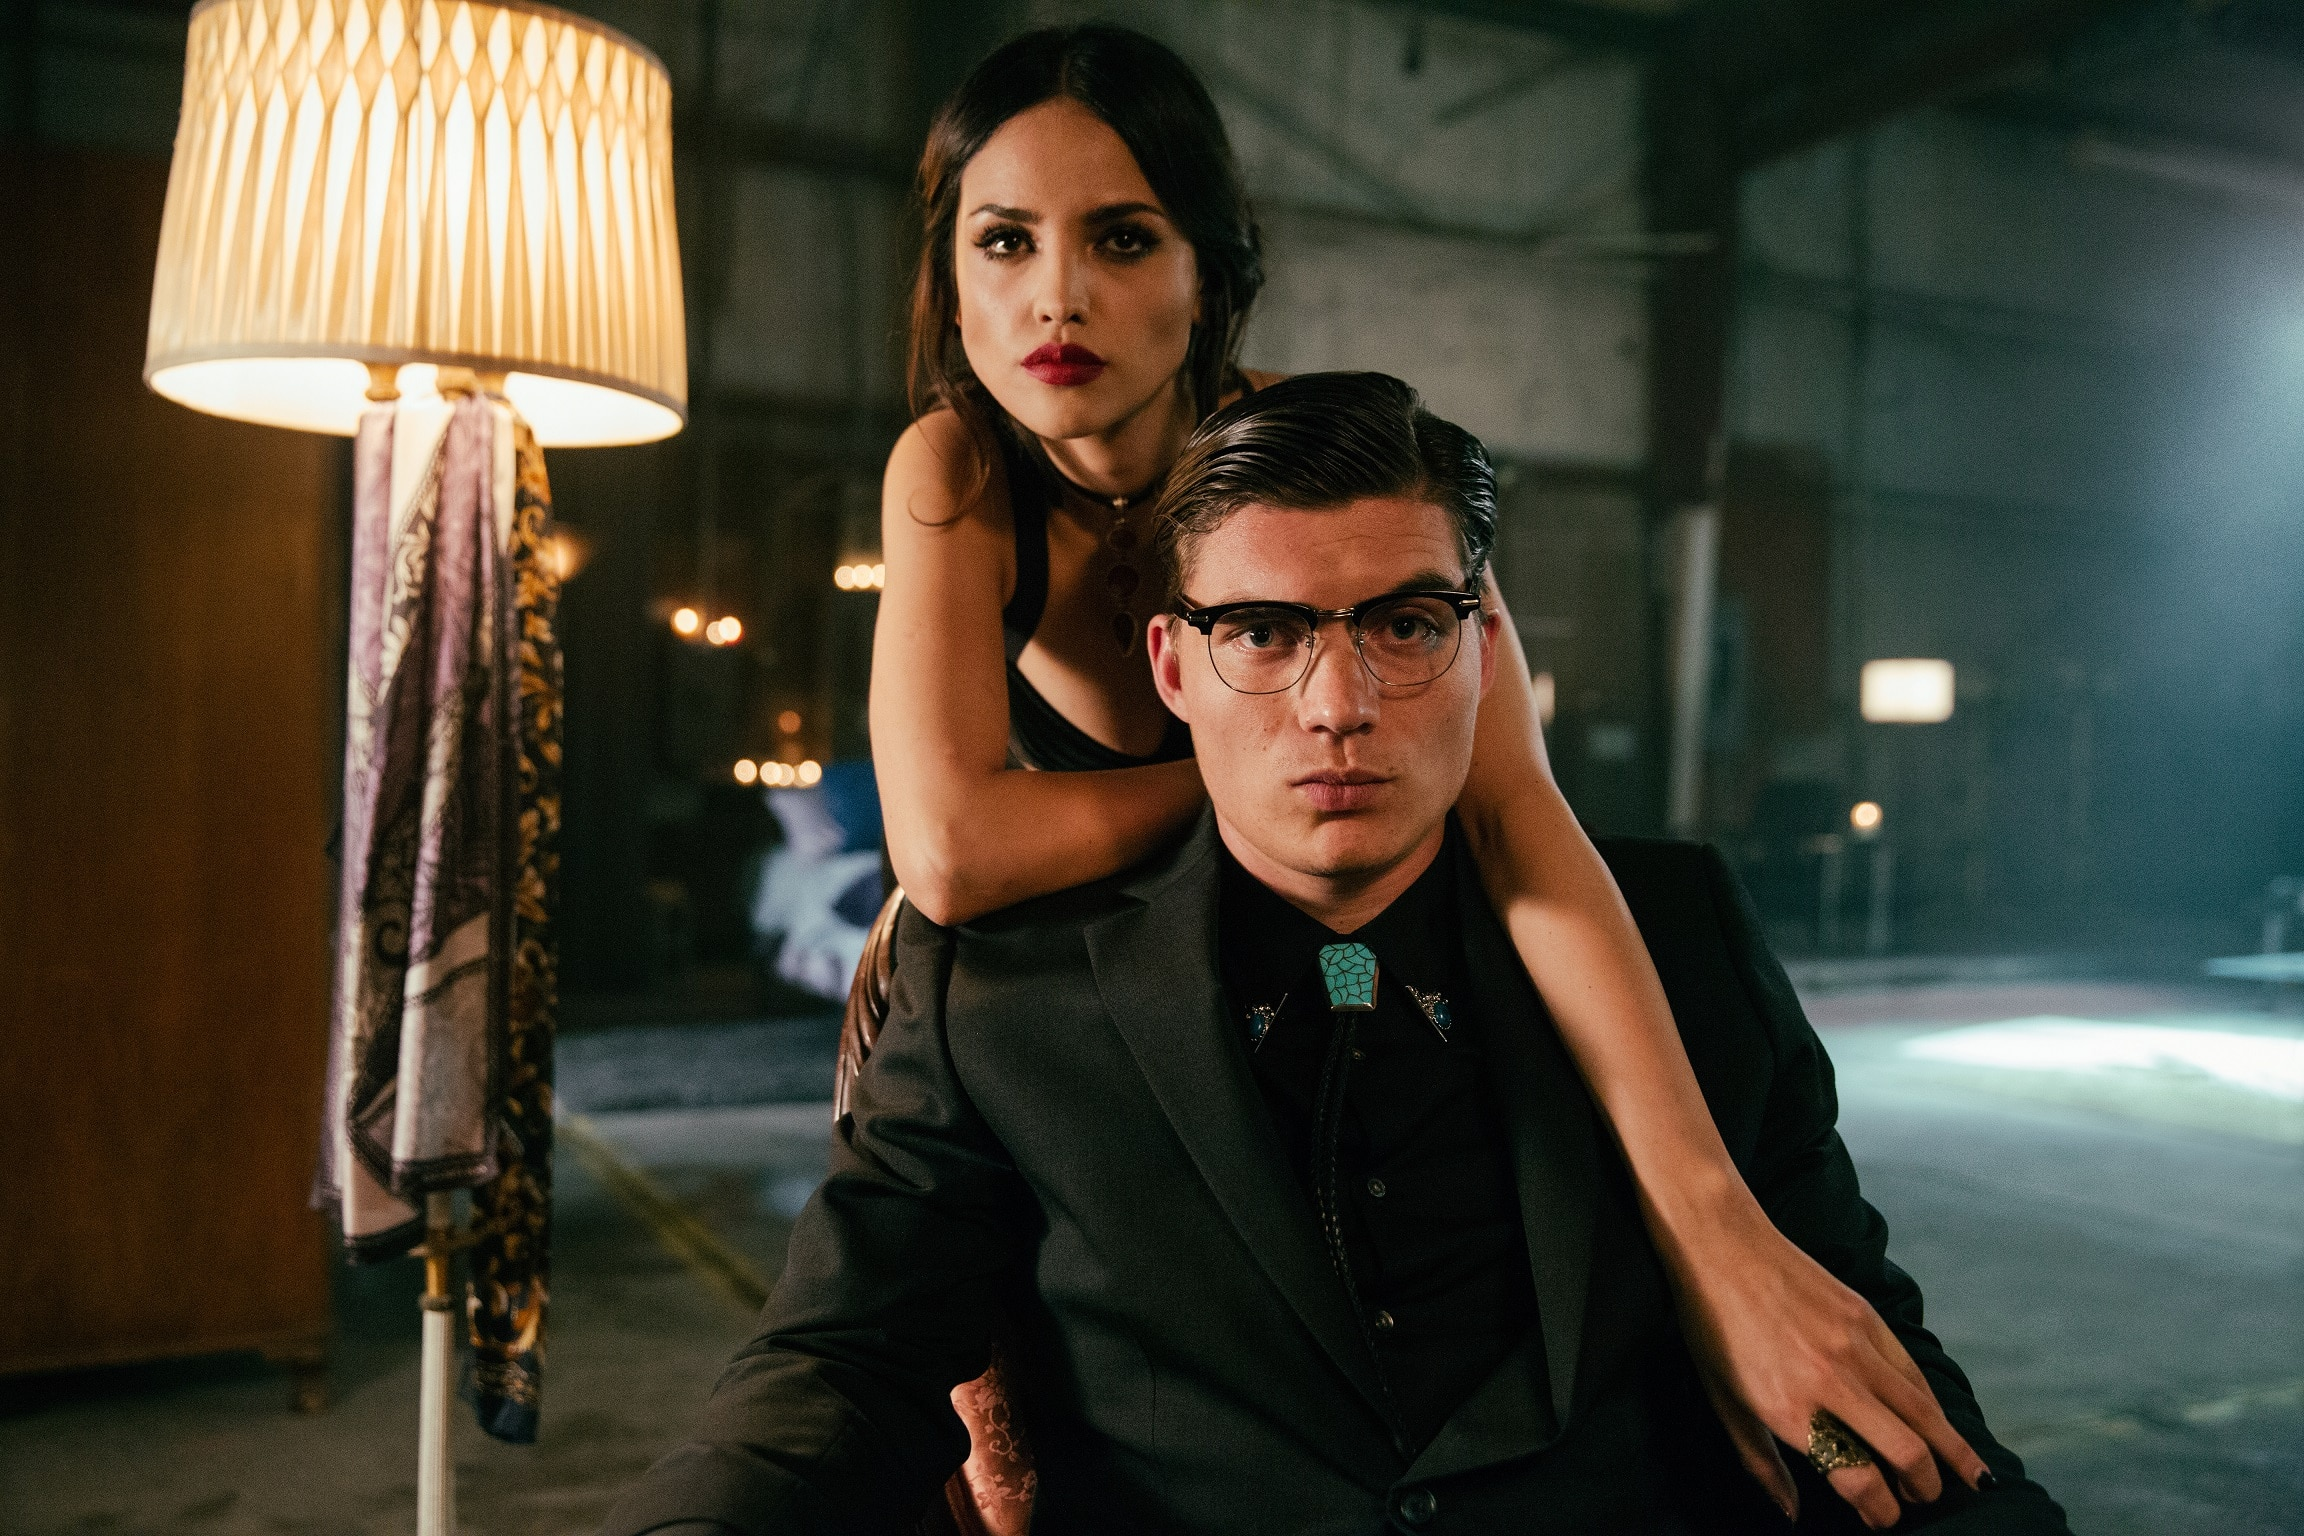 From Dusk Till Dawn: The Series, for El Rey Network and Miramax®. L to R; Eiza Gonzalez as Santanico Pandemonium and Zane Holtz as Richie Gecko.